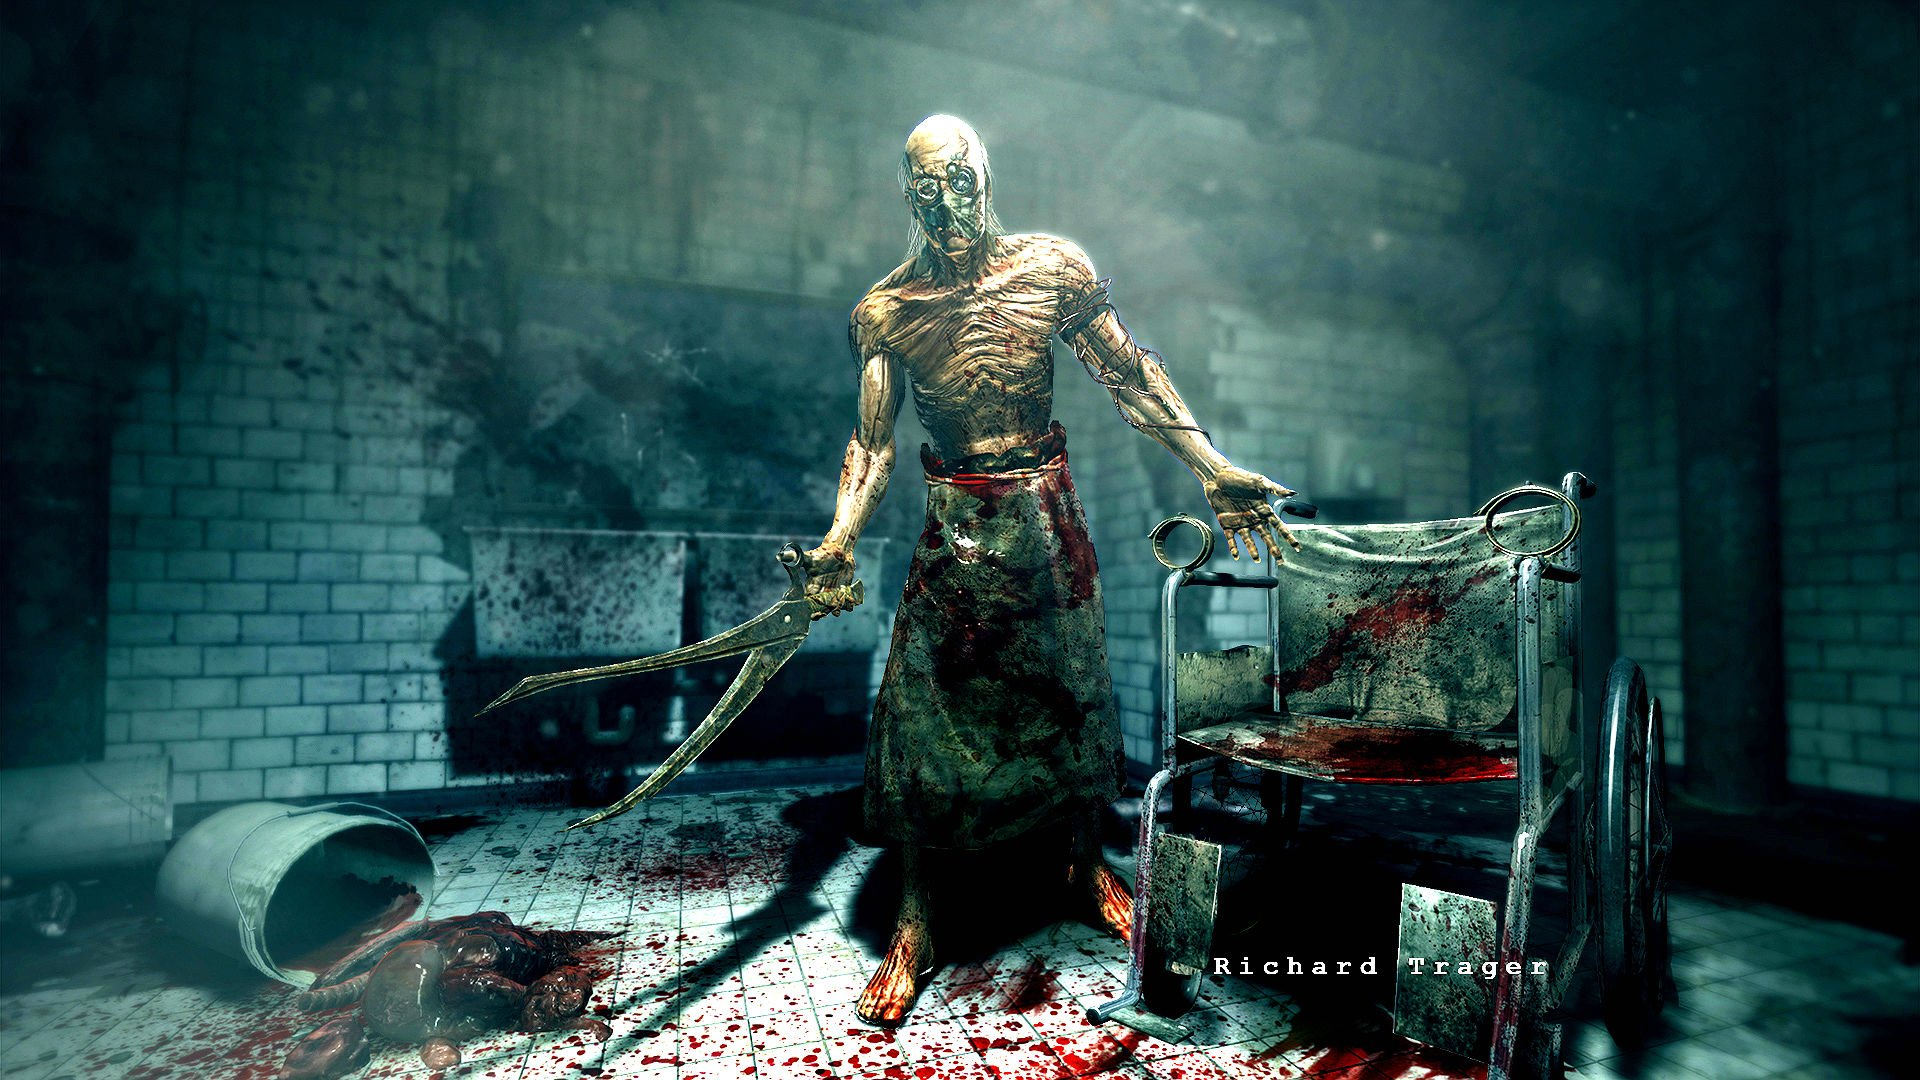 File Outlast Wallpapers CH6BAMUjpg   4USkY 1920x1080